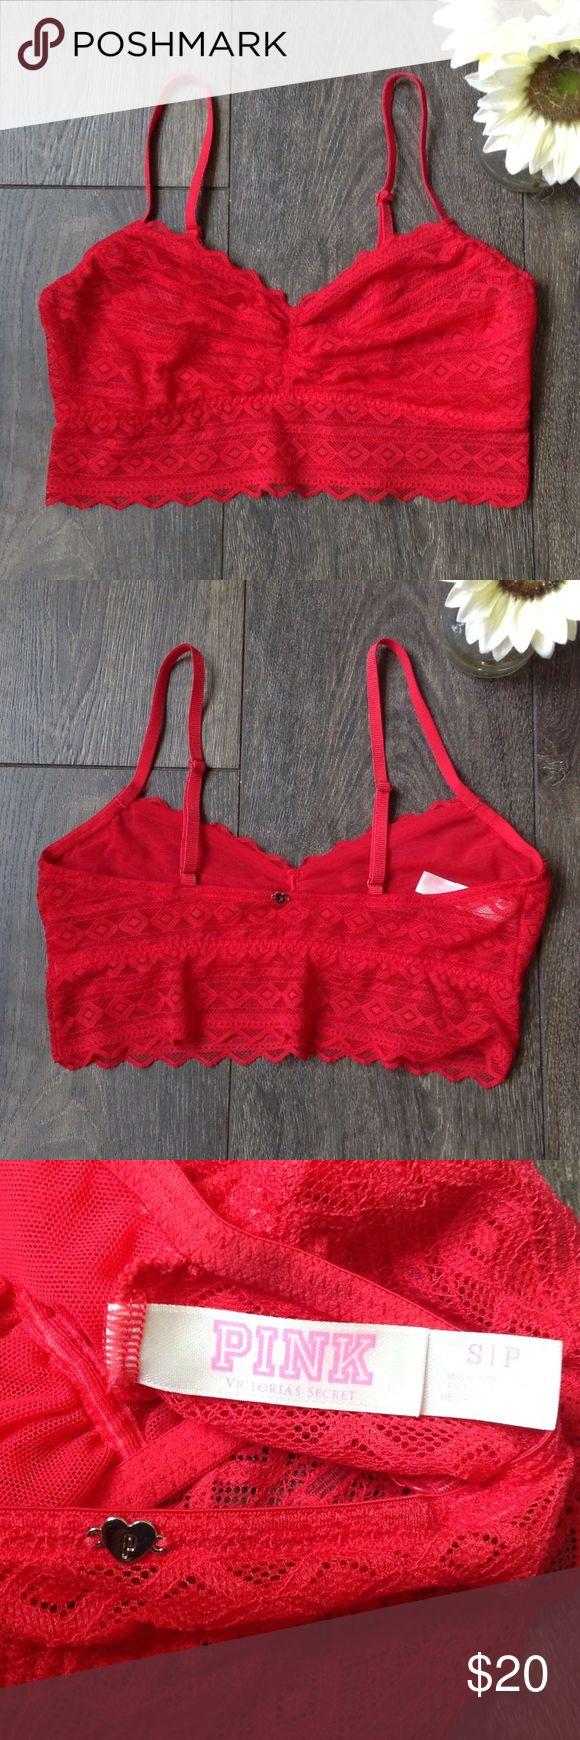 Victoria's Secret PINK bright red bralette EUC (perfect, no signs of wear), lightly lined, stretchy, adjustable straps PINK Victoria's Secret Intimates & Sleepwear